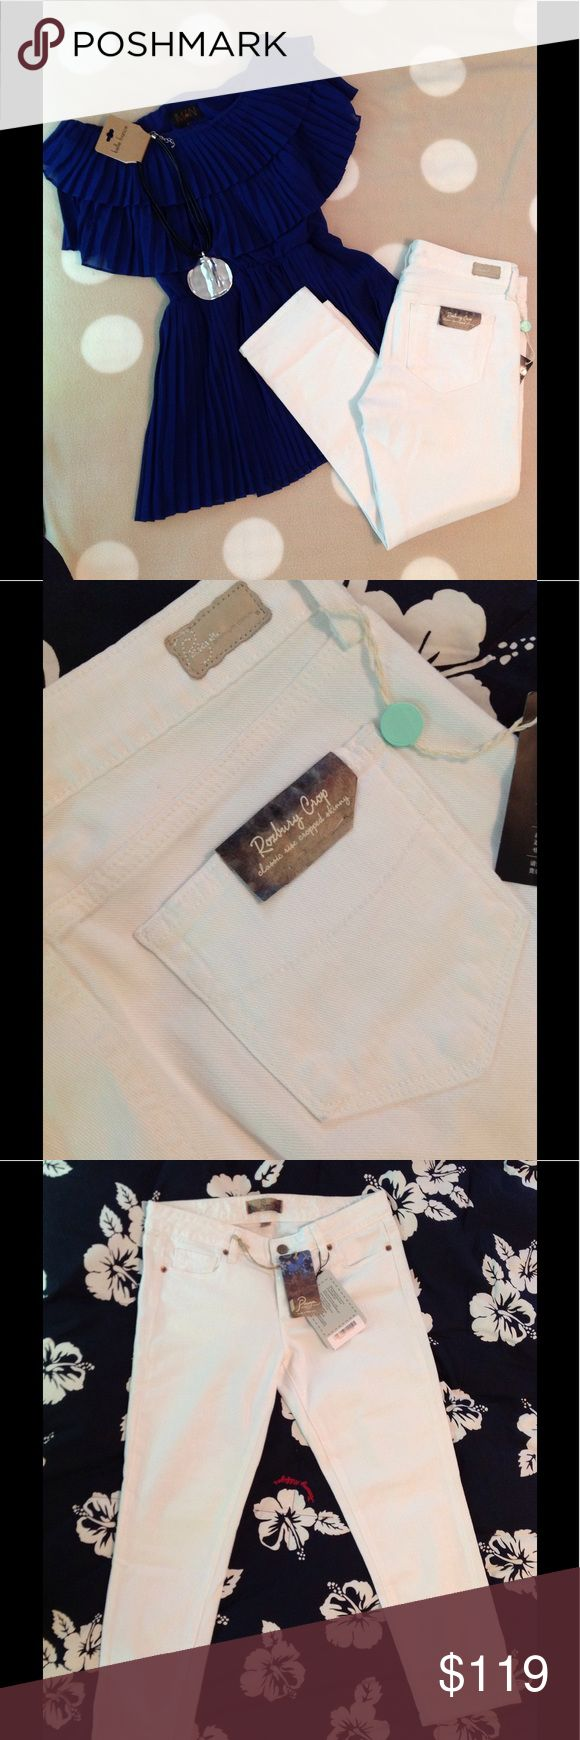 """NWT Paige Roxbury White Skinny Crop 28 Brand New With Tags. Paige 'Roxbury' Skinny Crop. Midrise. Zip fly. 5 pocket styling. Optic white. Skinny throughout leg. Approx 24"""" inseam, 8 1/8"""" rise.  99% cotton, 1% stretch. Size 28.    (Shown with Iman royal accordion pleat blouse M...leather/silver medallion...both also for sale) Paige Jeans Jeans Ankle & Cropped"""